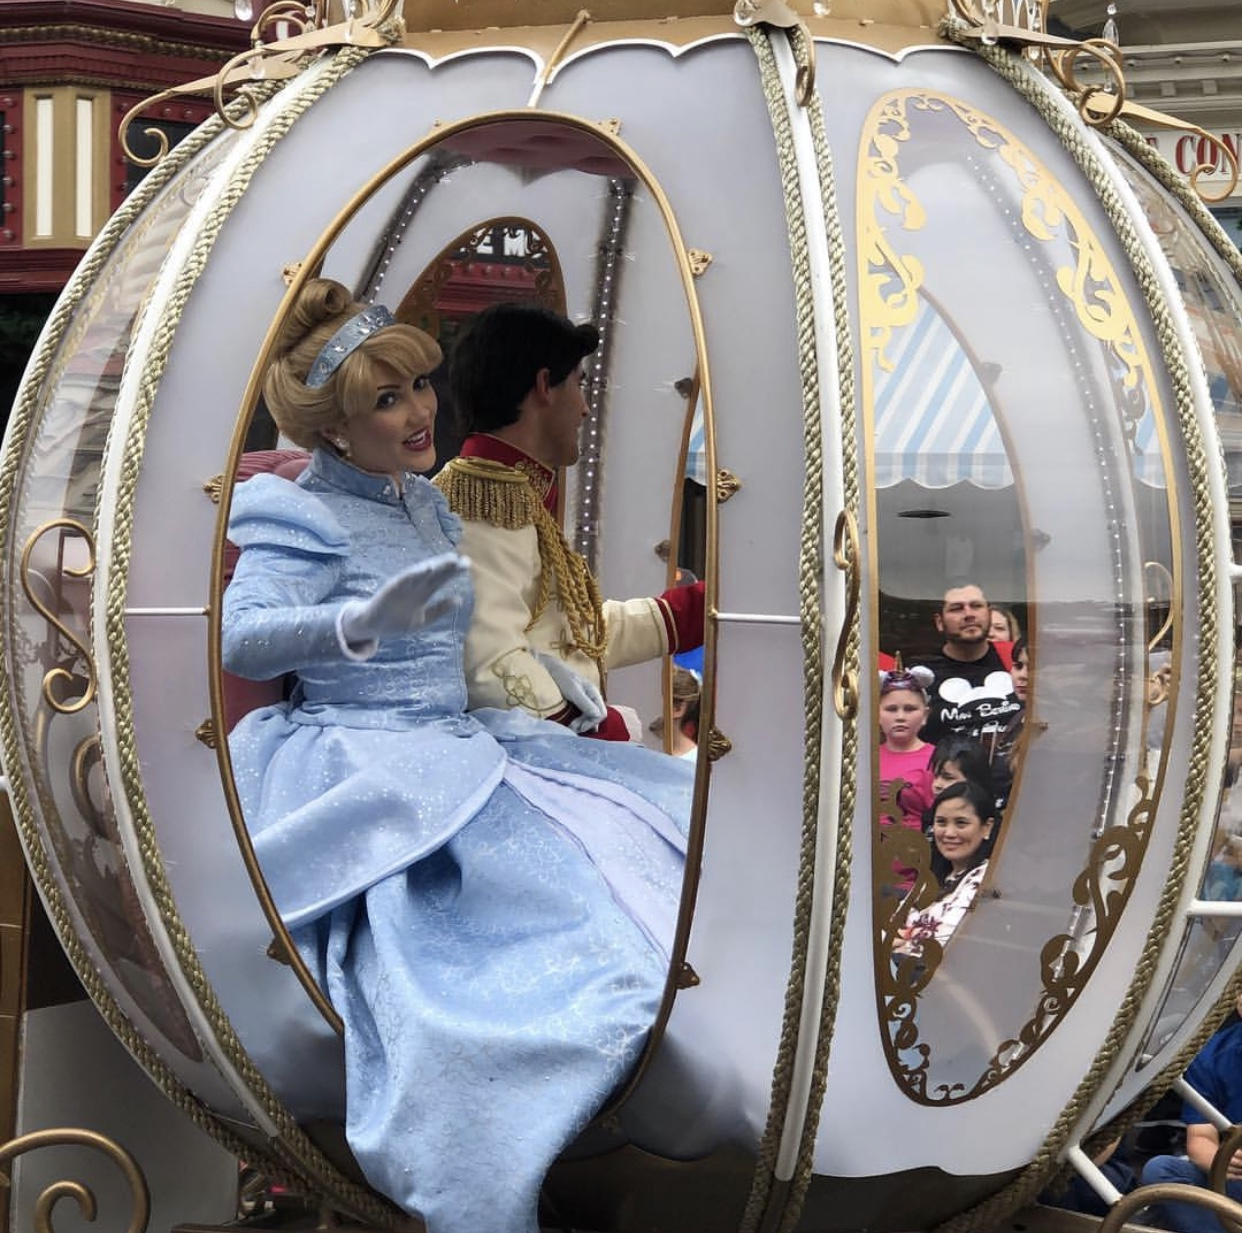 Celebrating Cinderella's 70th Anniversary